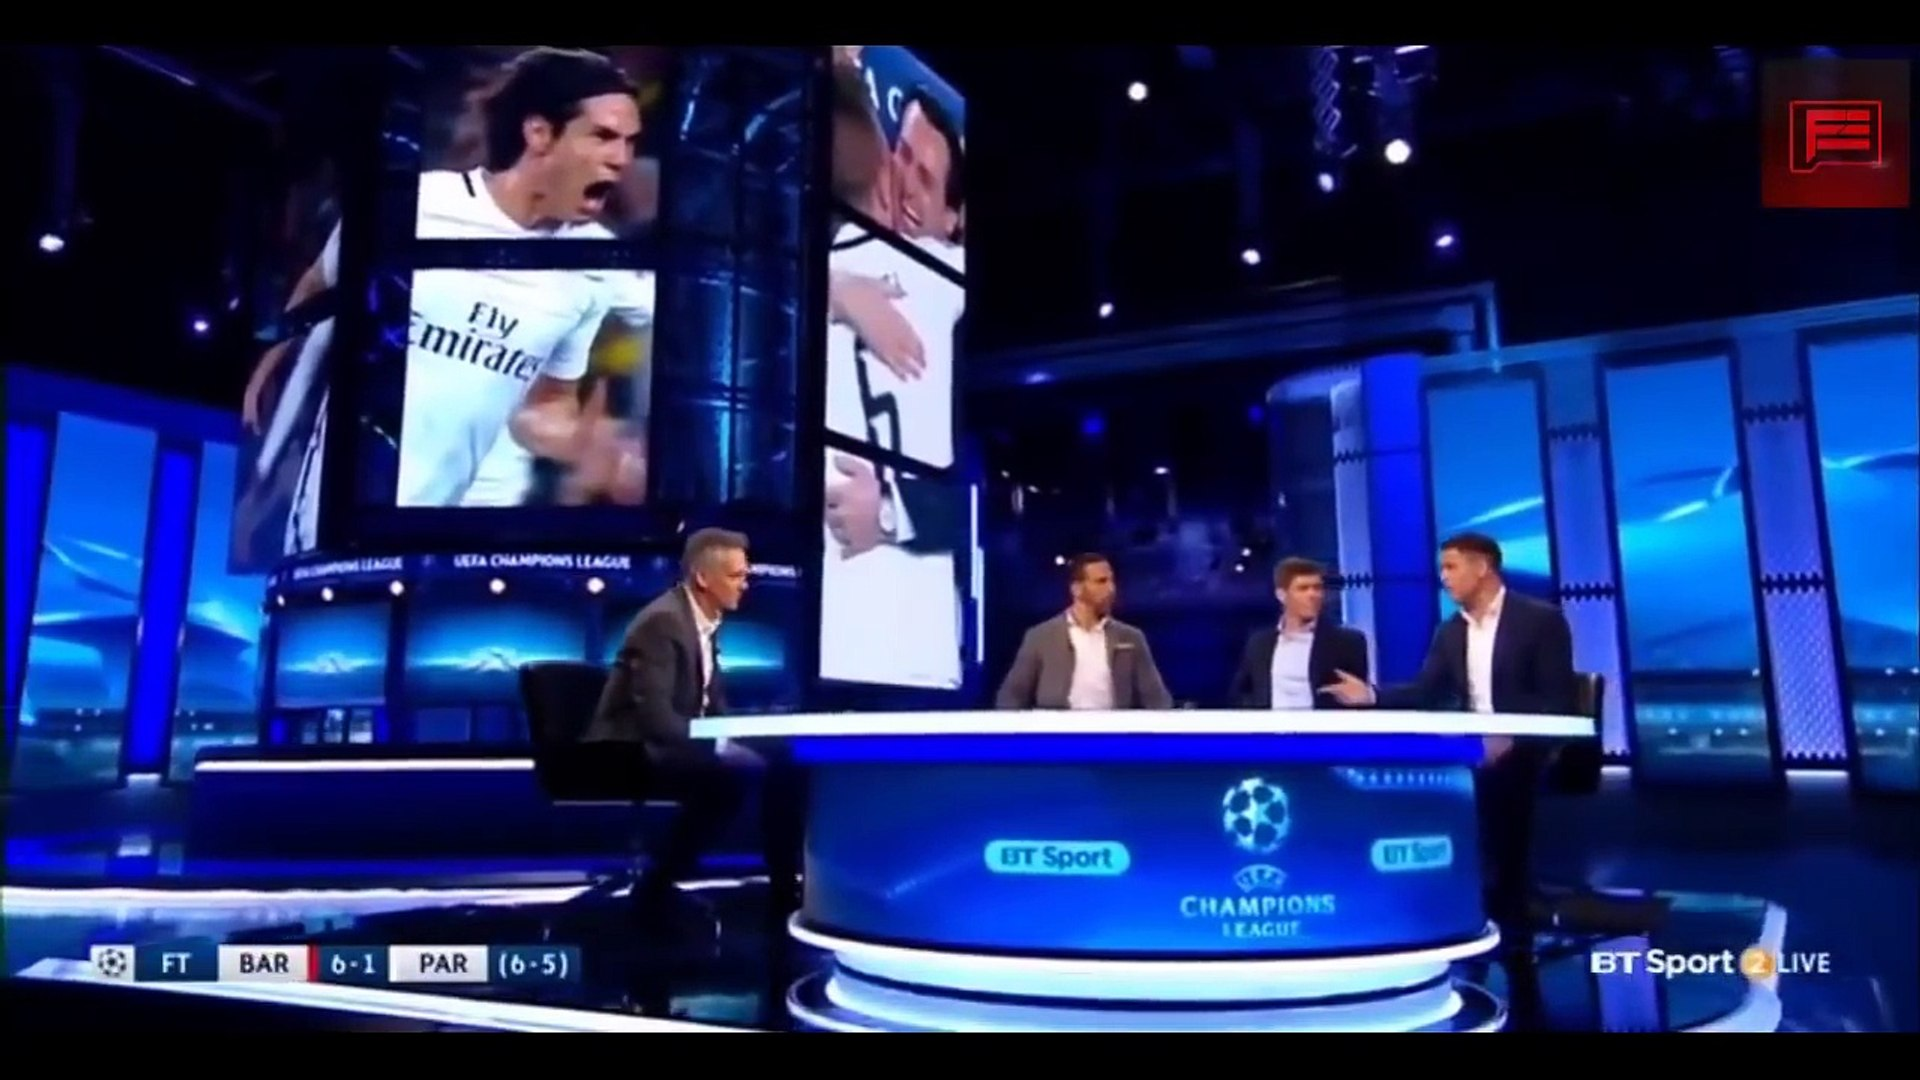 Barcelona vs PSG 6 1 Full Post Match Analysis By Rio Ferdinand, Steven Gerrard & Michael O